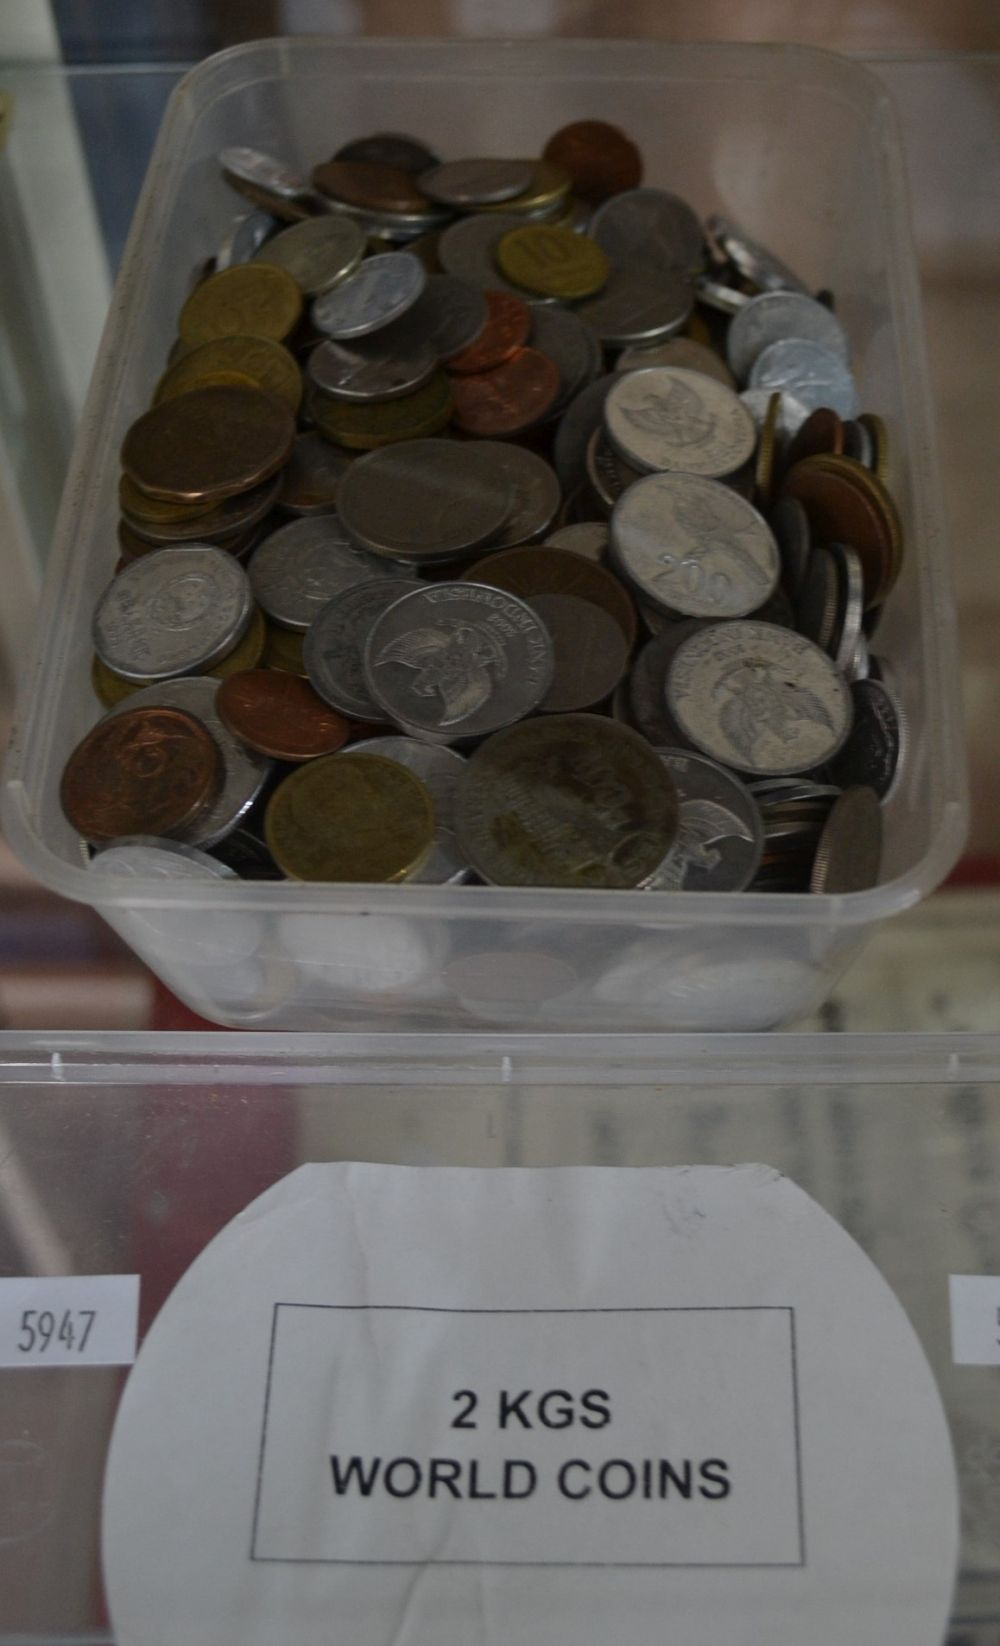 Plastic tub with assorted coins of the world